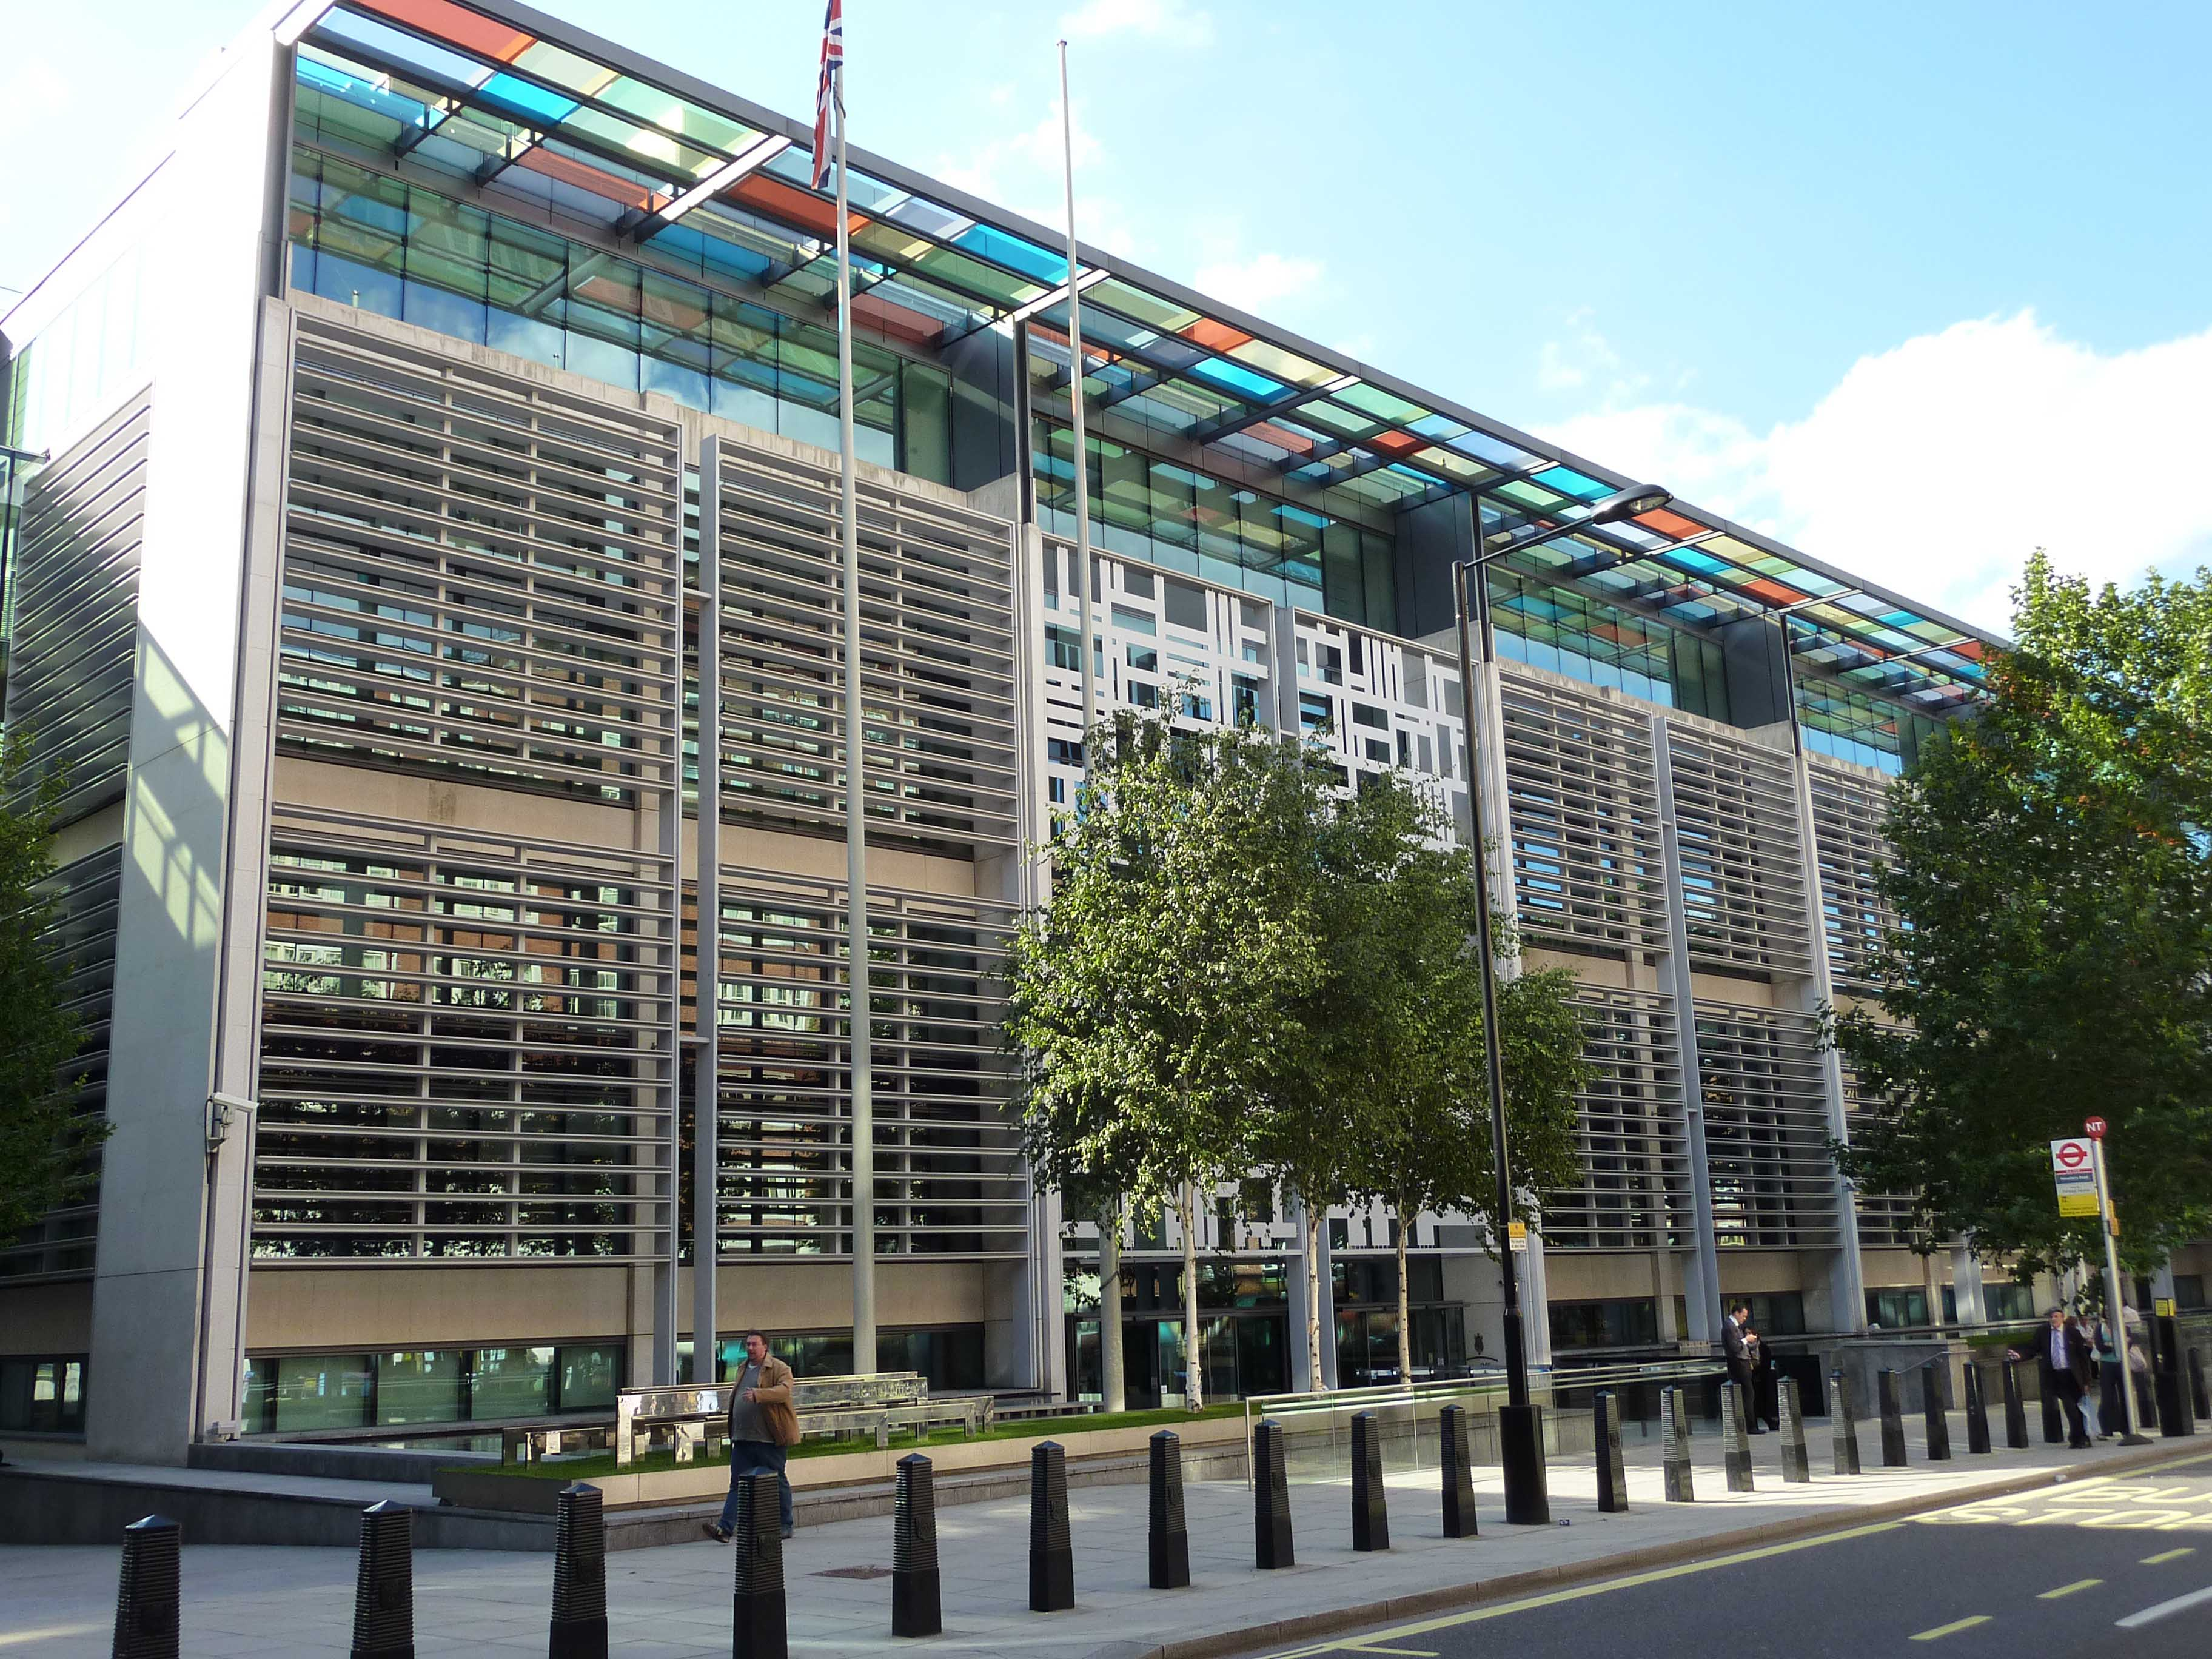 PTSG to deliver multiple services for Home Office